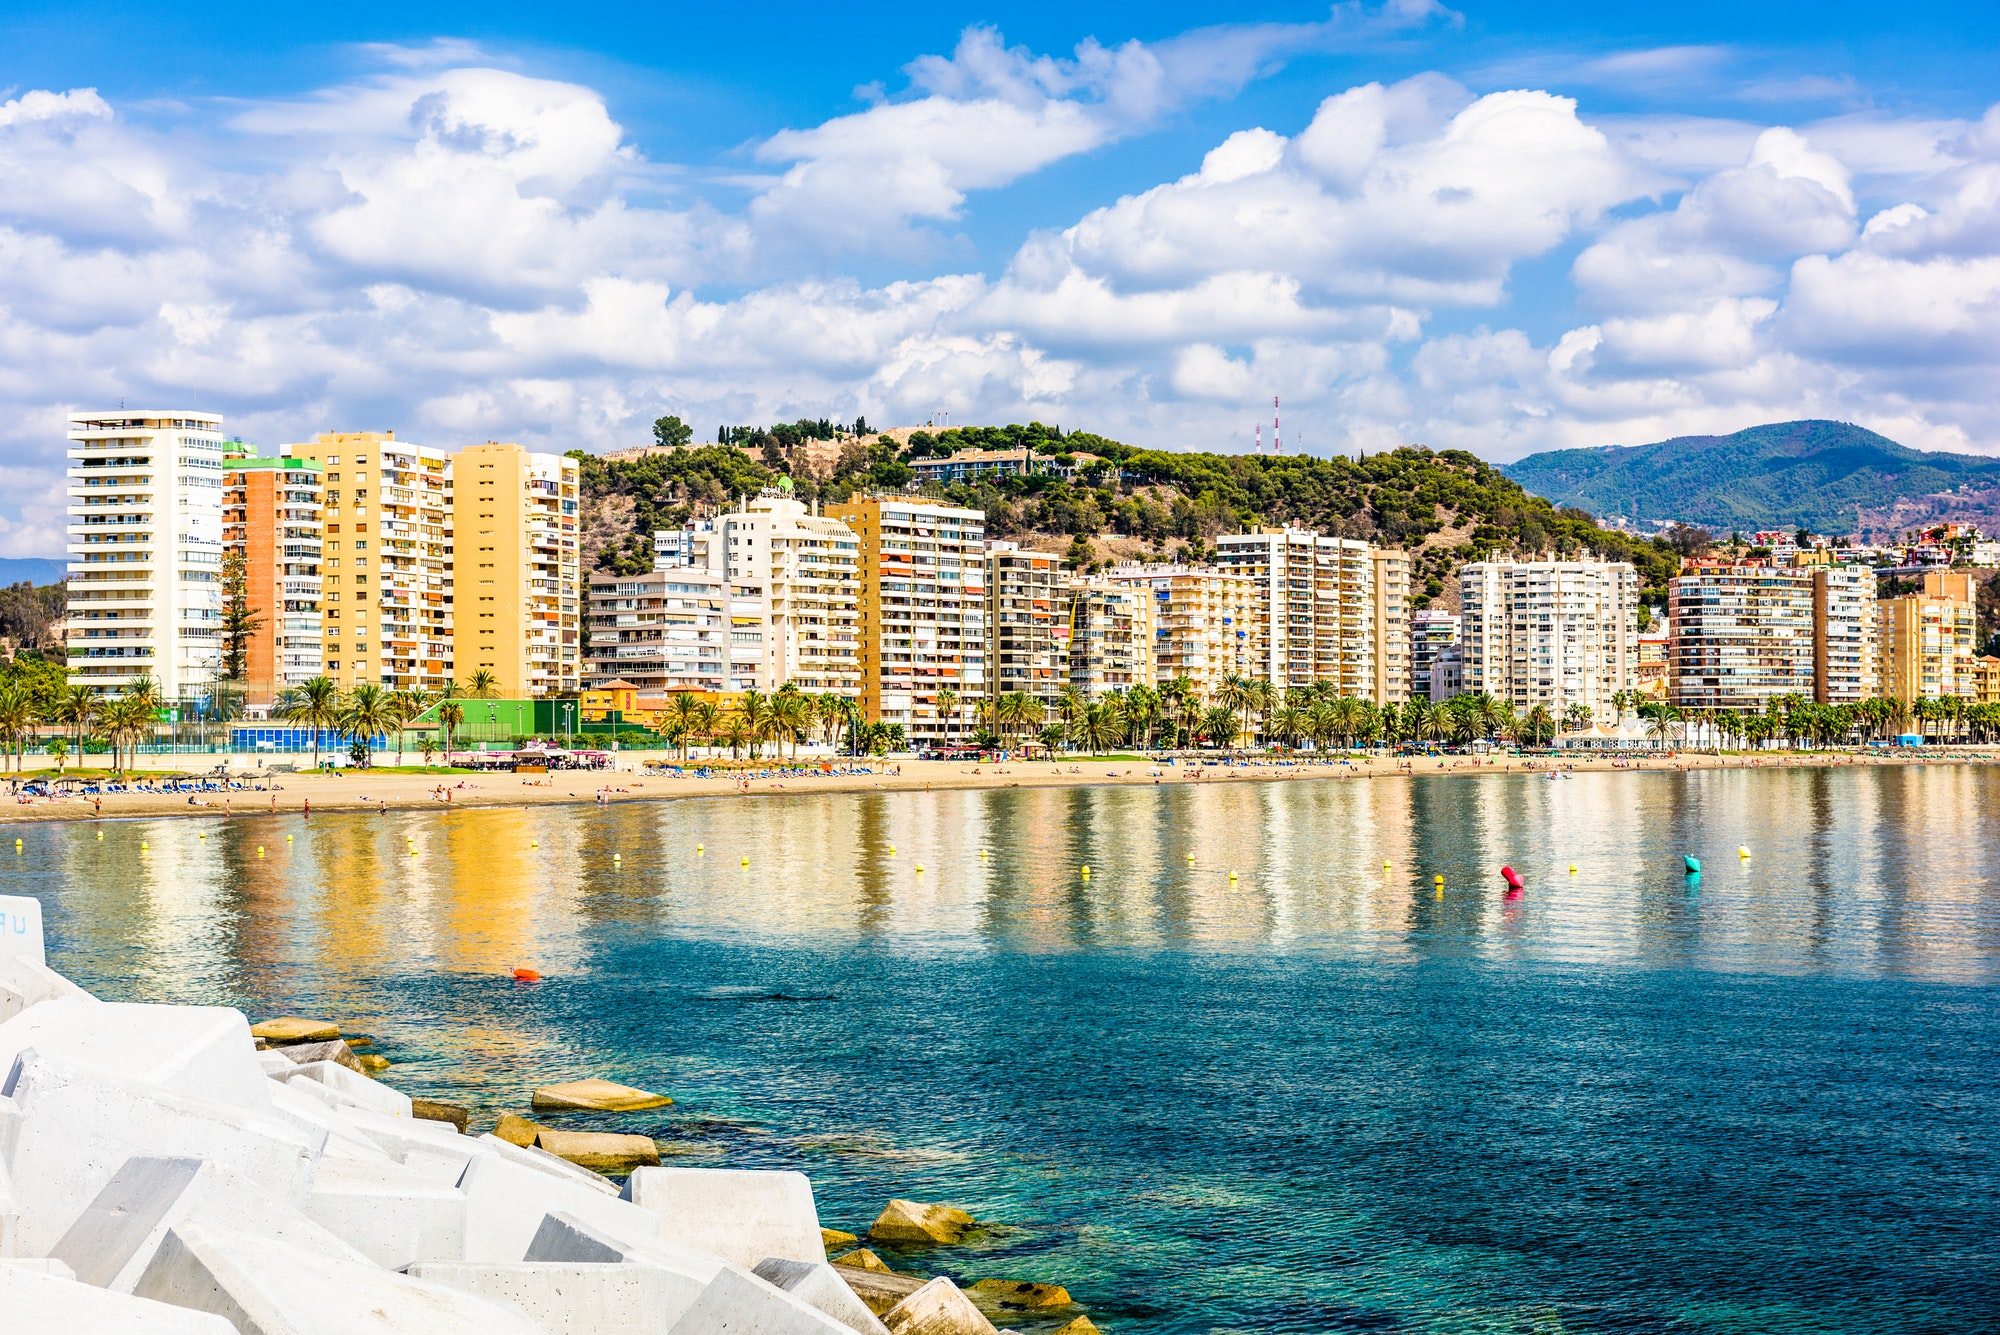 House prices in Malaga fell 2.57% in Q1